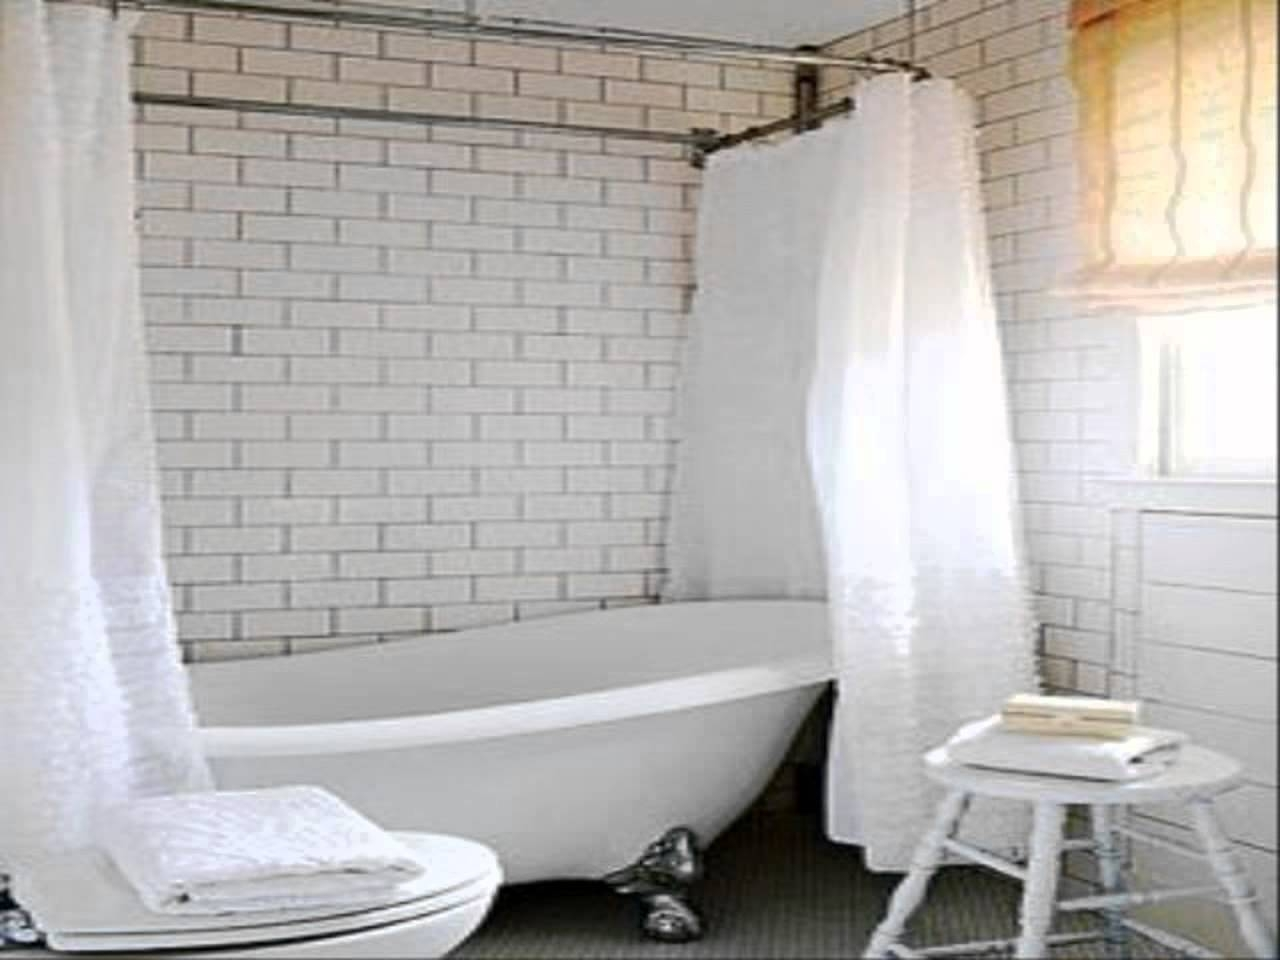 Claw Foot Tub Wall Mounted Shower Curtain Rod Add A Shower With For Claw Tub Shower Curtains (Image 8 of 25)